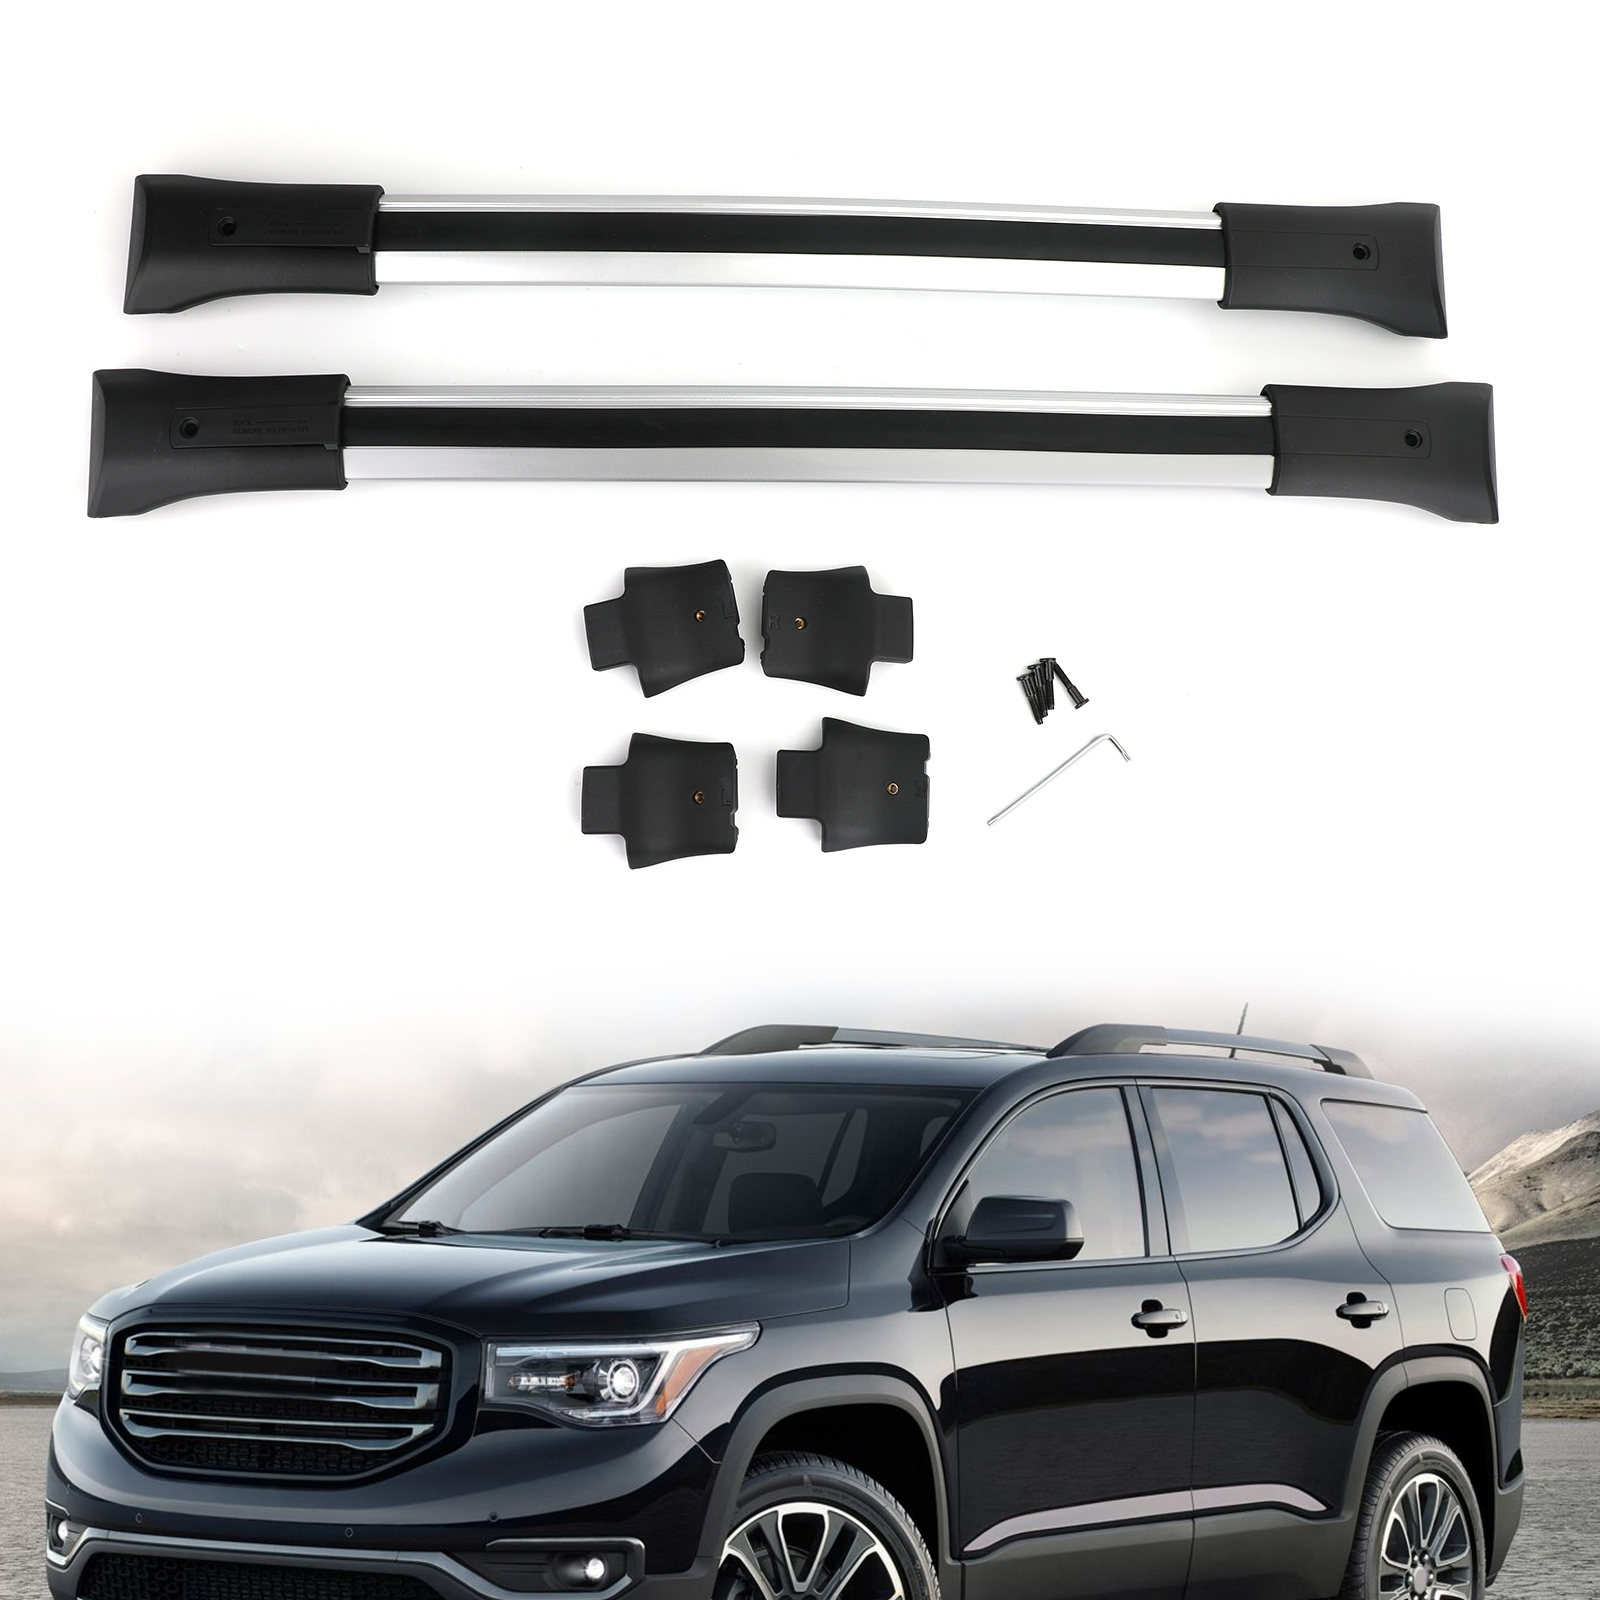 motor genic roof rack cross rail package silver 84130842 fits for gmc acadia gm 2010 2017